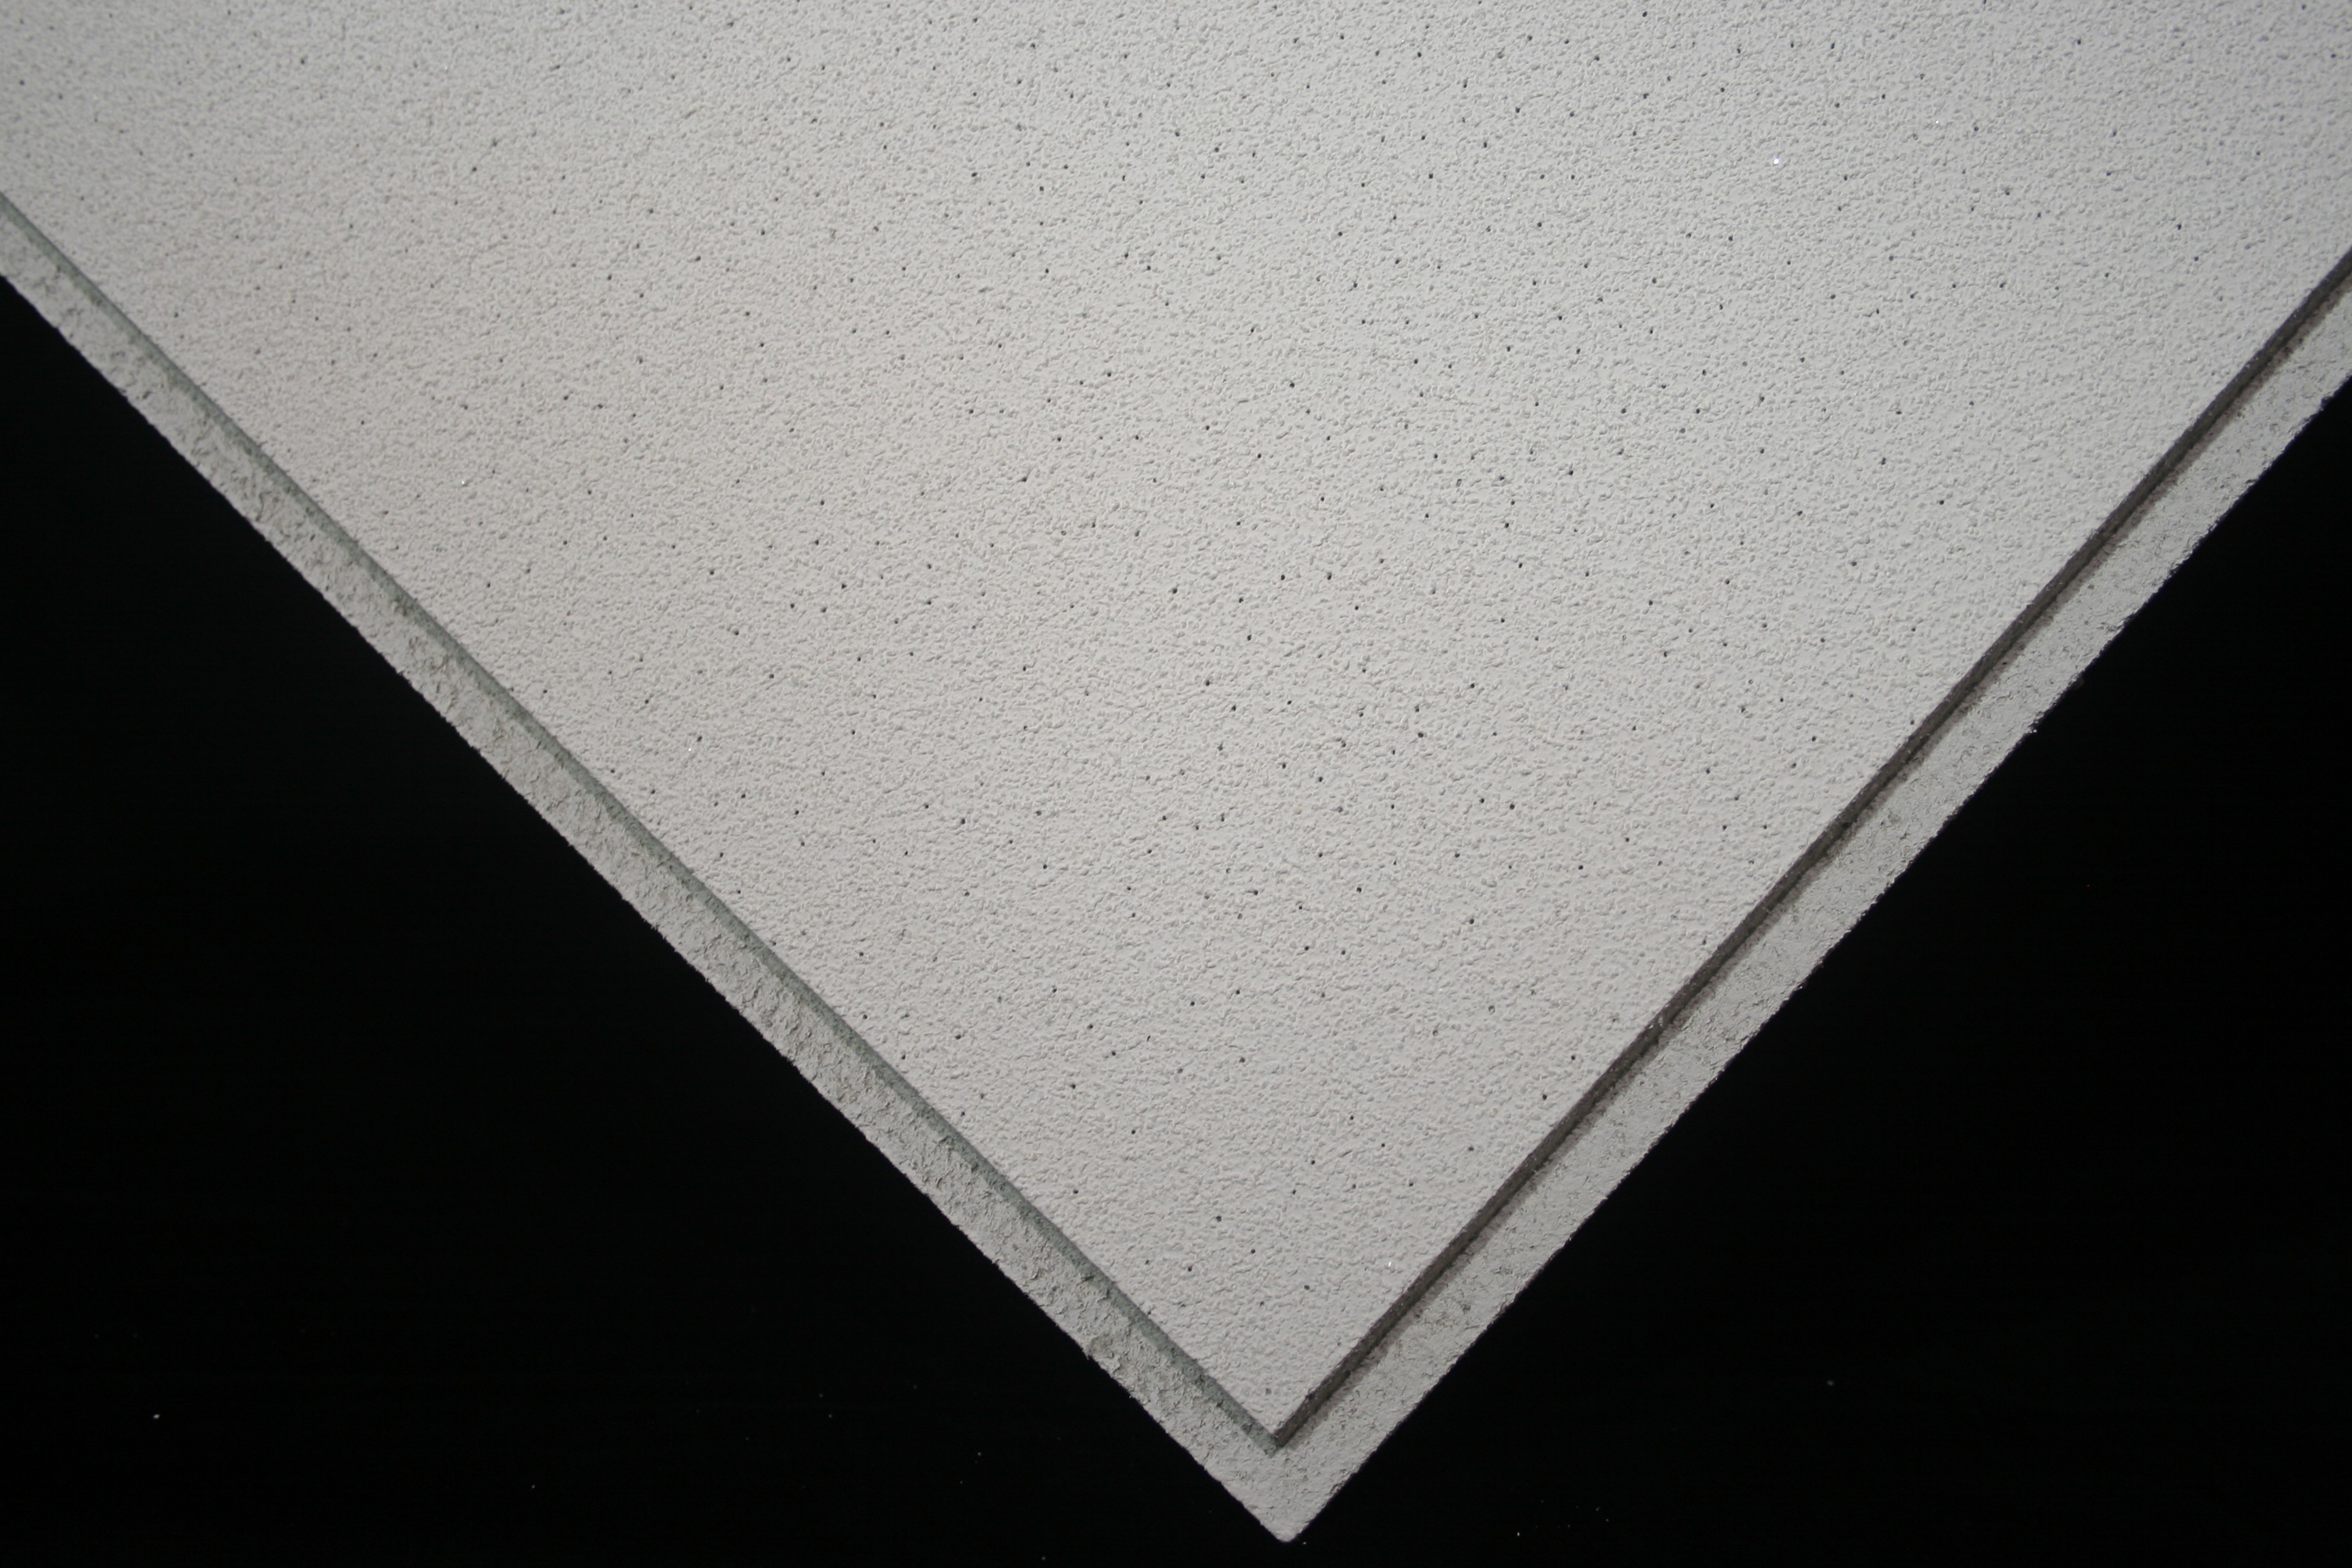 Mineral fibre ceiling tile owa cosmos lacase start slideshowstop slideshow dailygadgetfo Image collections